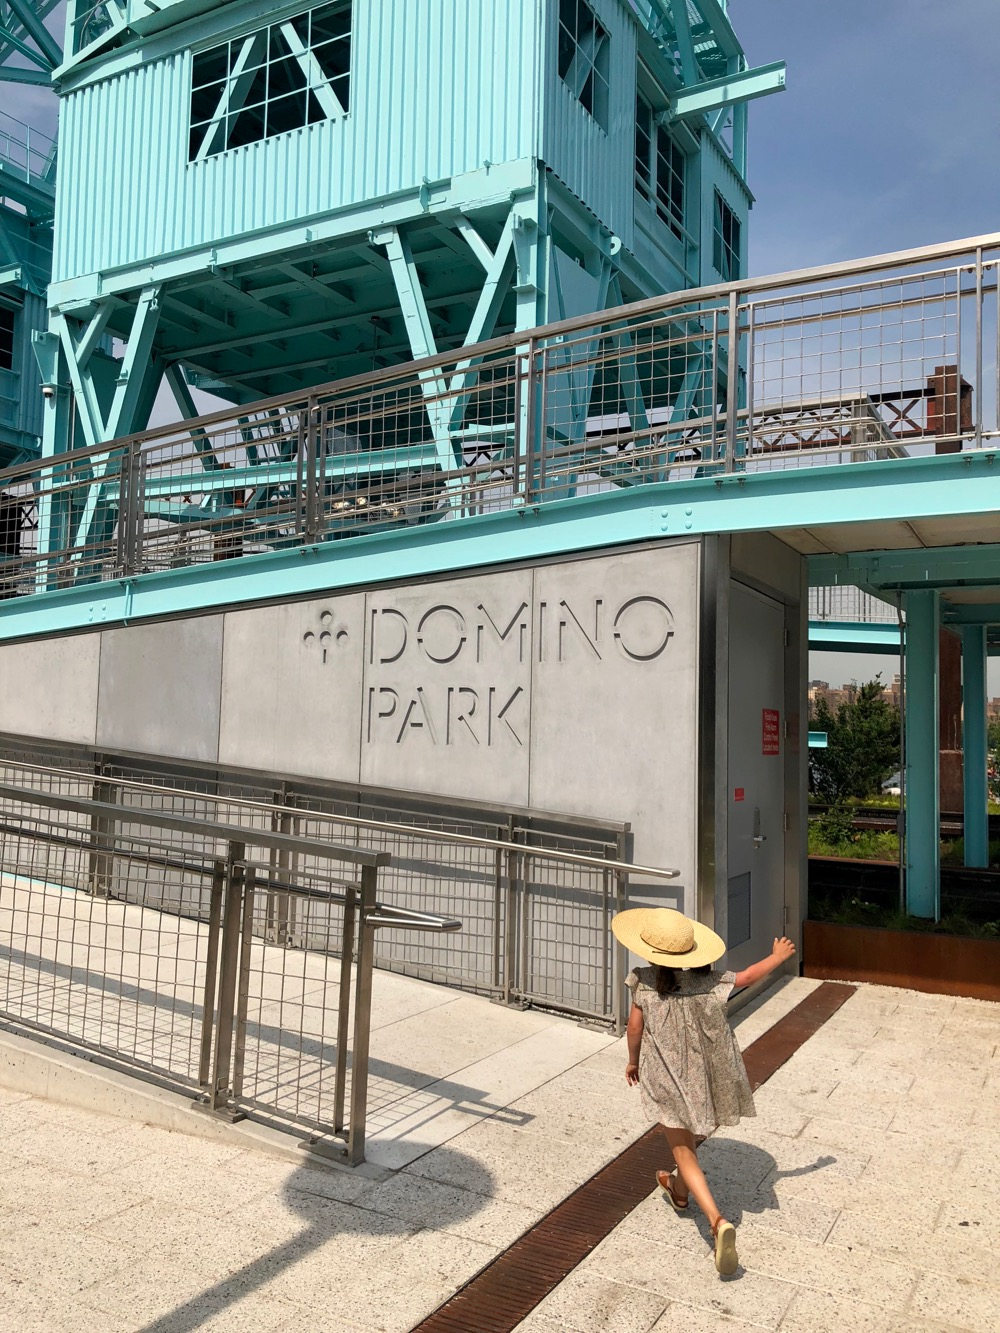 Entrance to Domino Park